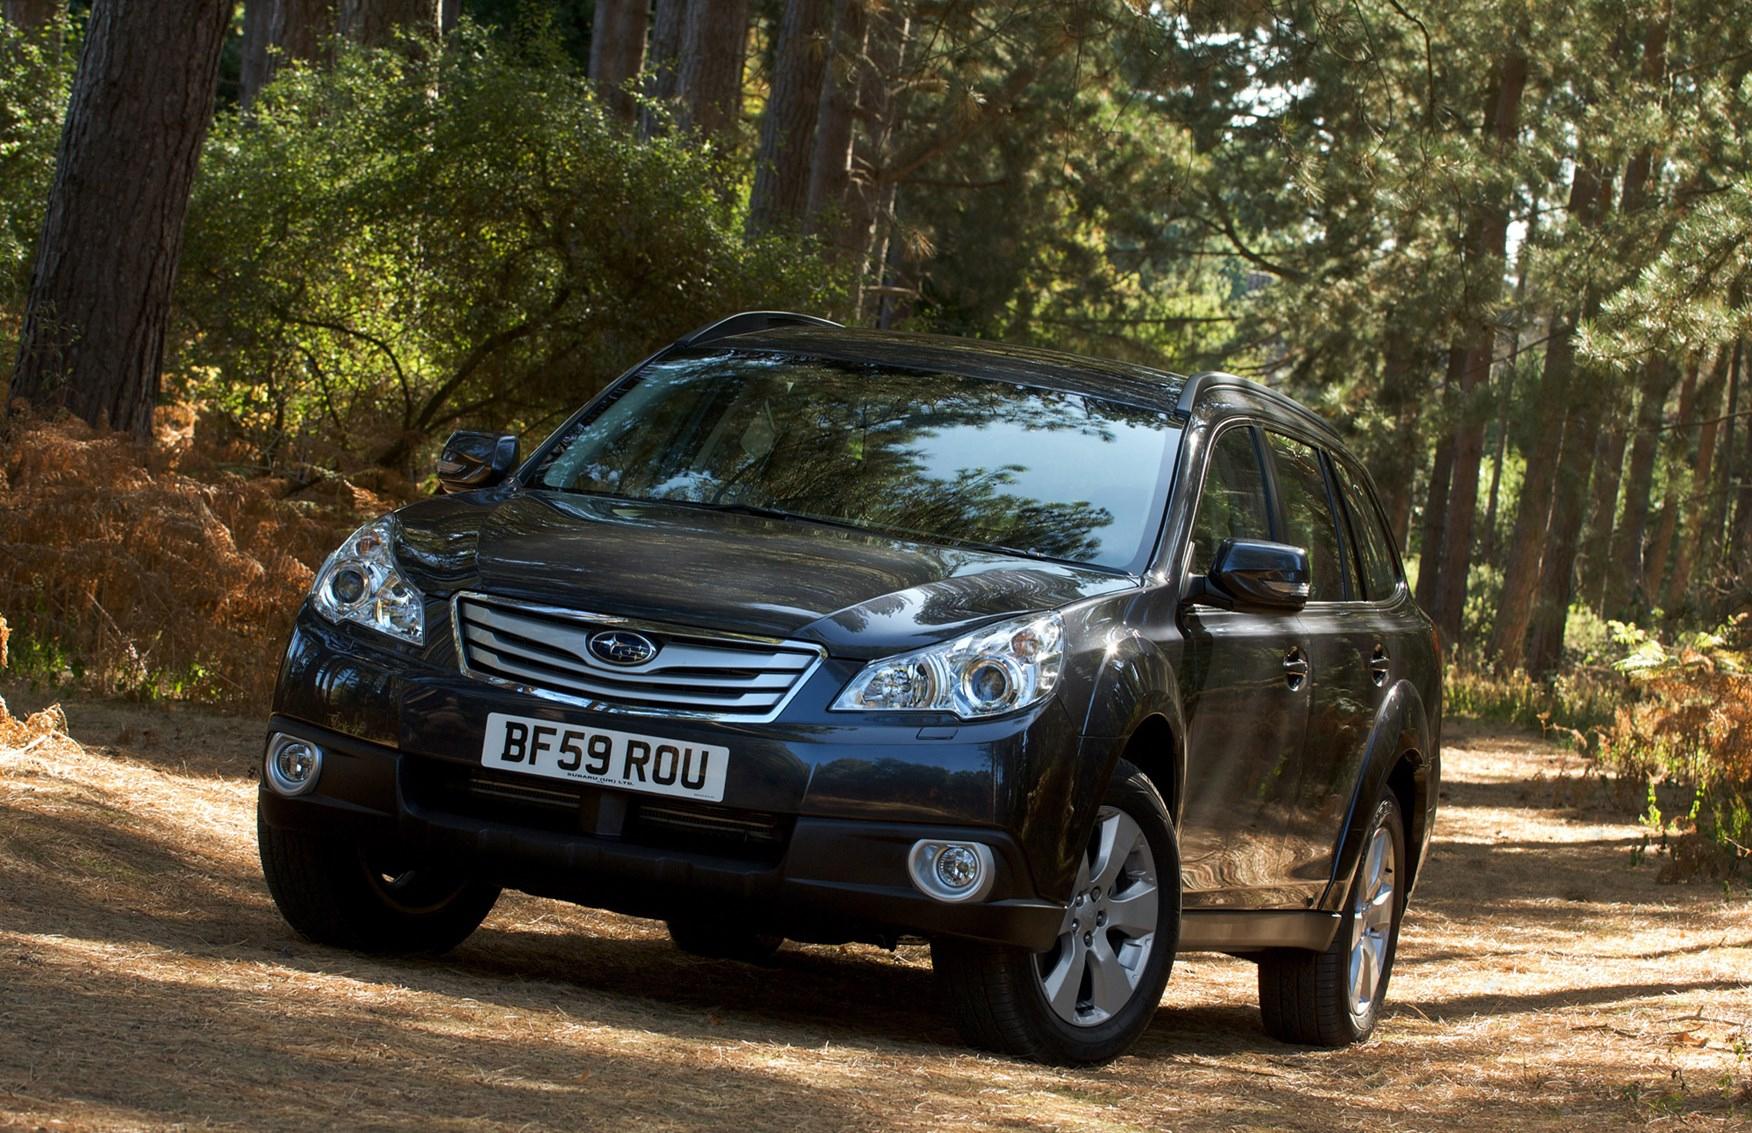 Used Subaru Outback Estate (2009 - 2014) Review | Parkers